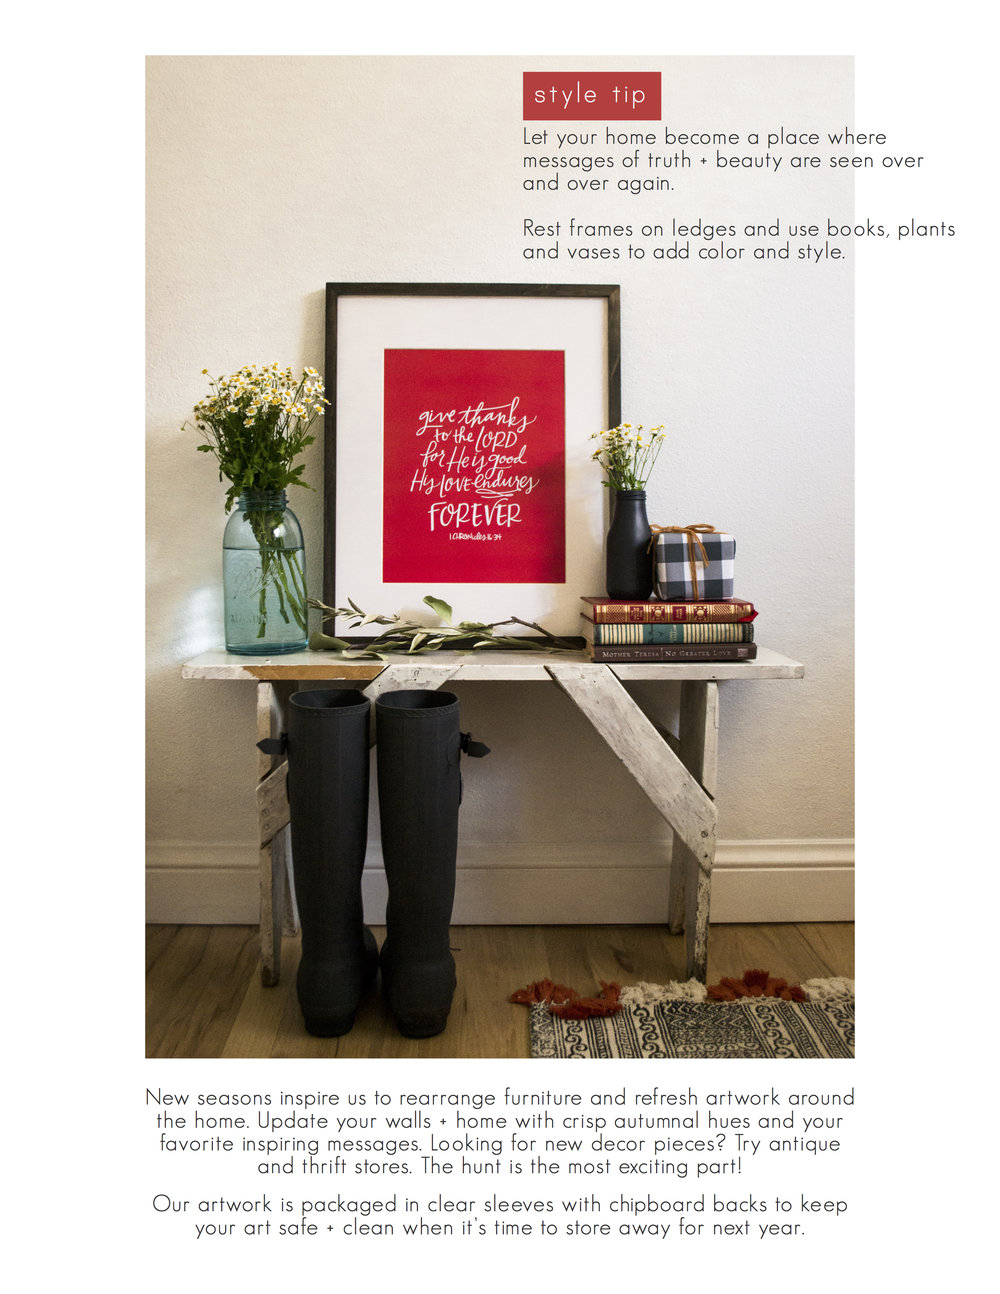 page 5 style tip with give thanks print.jpeg